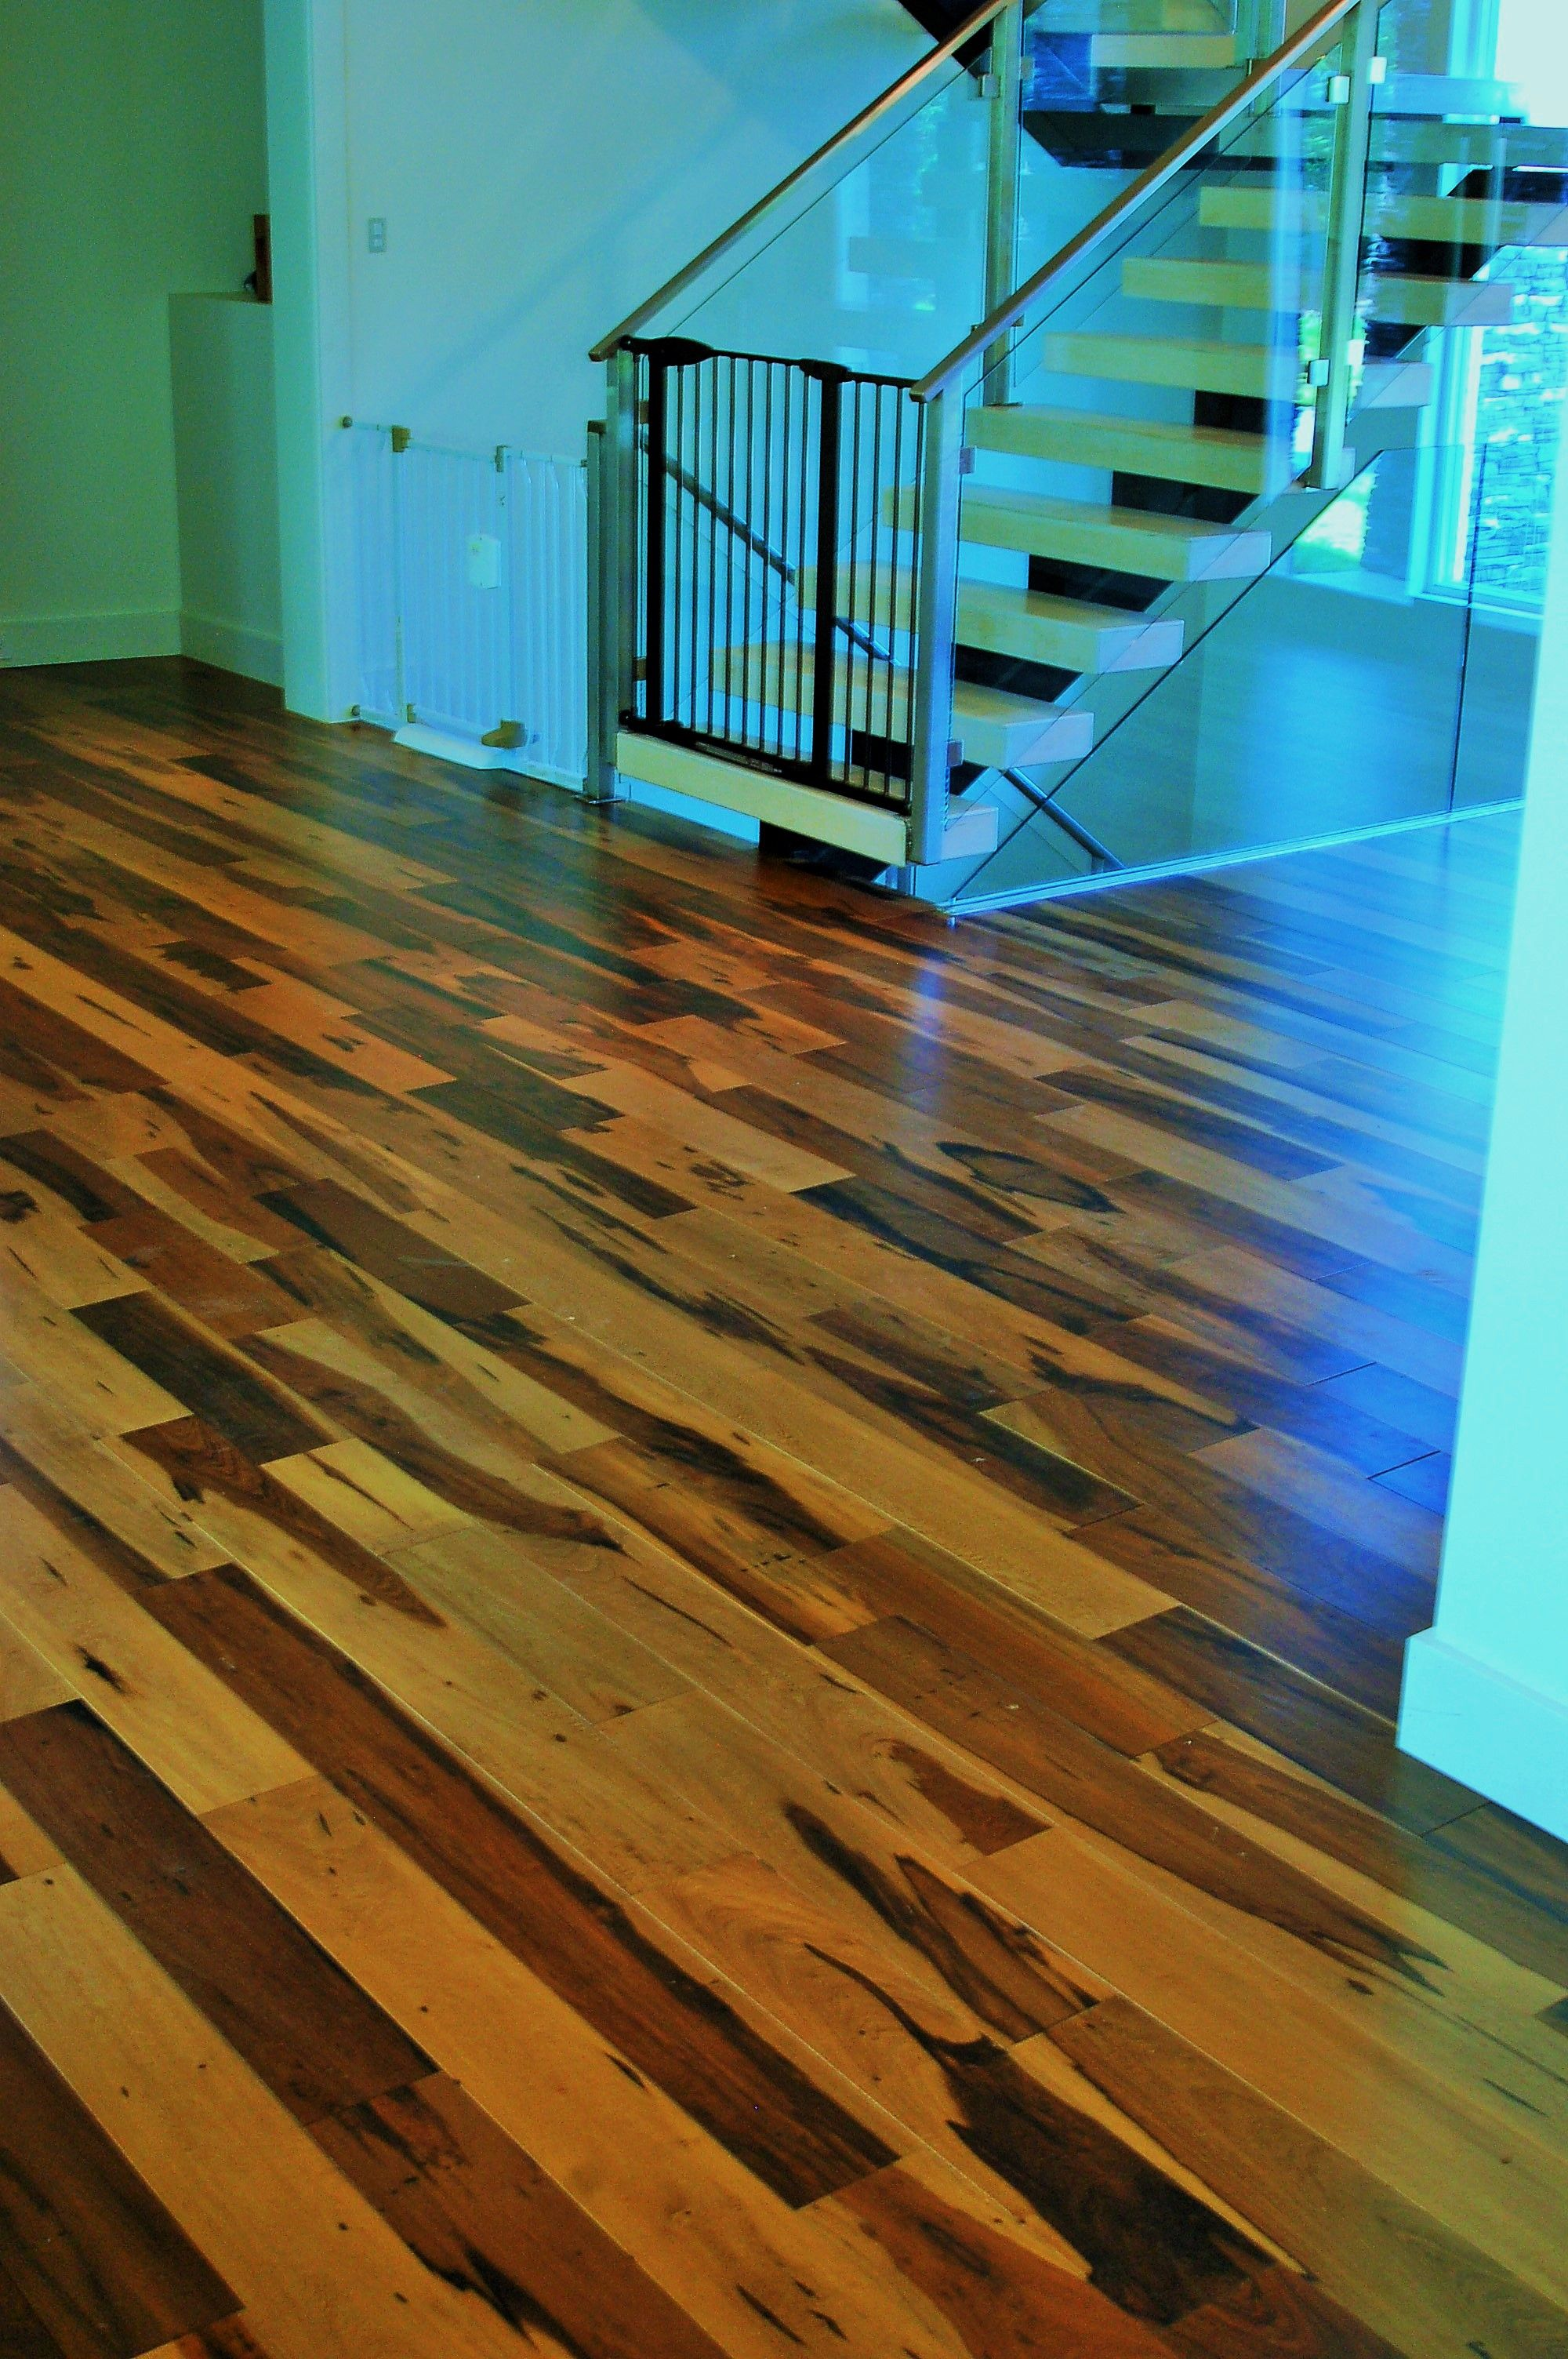 flooring pecan goldenhardwoodfloors tel com hardwood cmapleoak maple floors csl floor golden